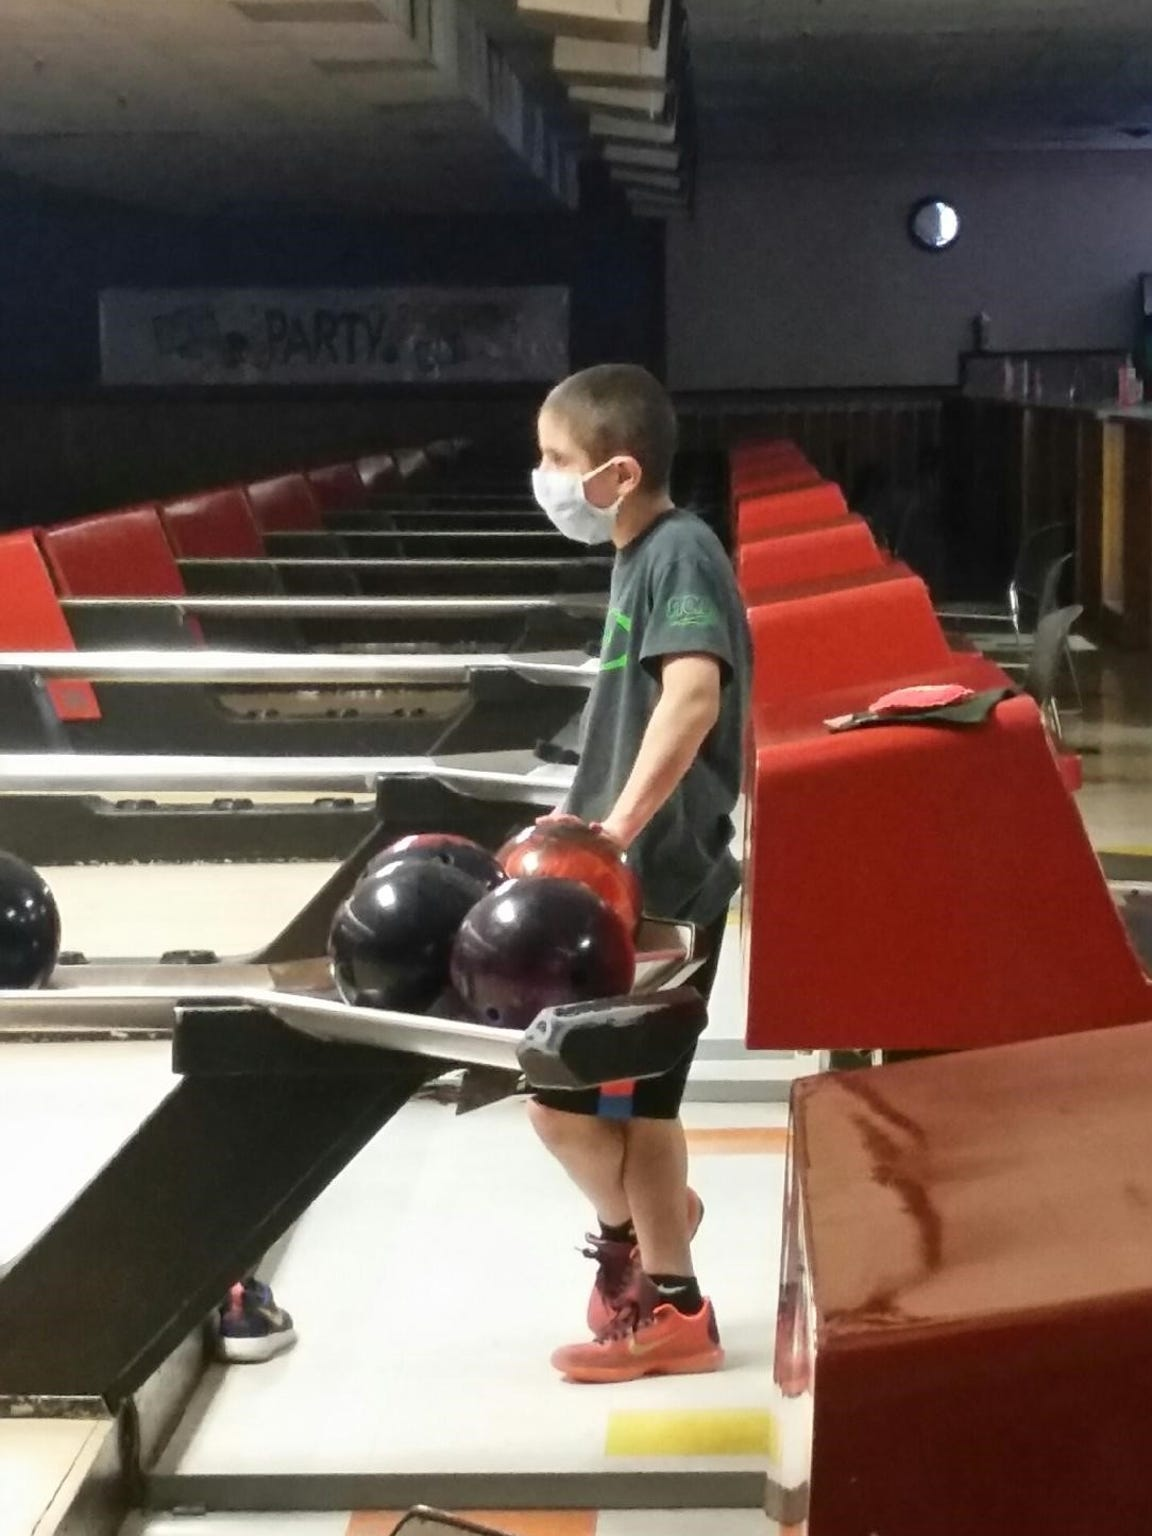 Bowling alone during off-hours, wearing a mask to prevent against infection, Cameron Hurwitz never gave up on dream of normal life and returning to Brighton High School team.